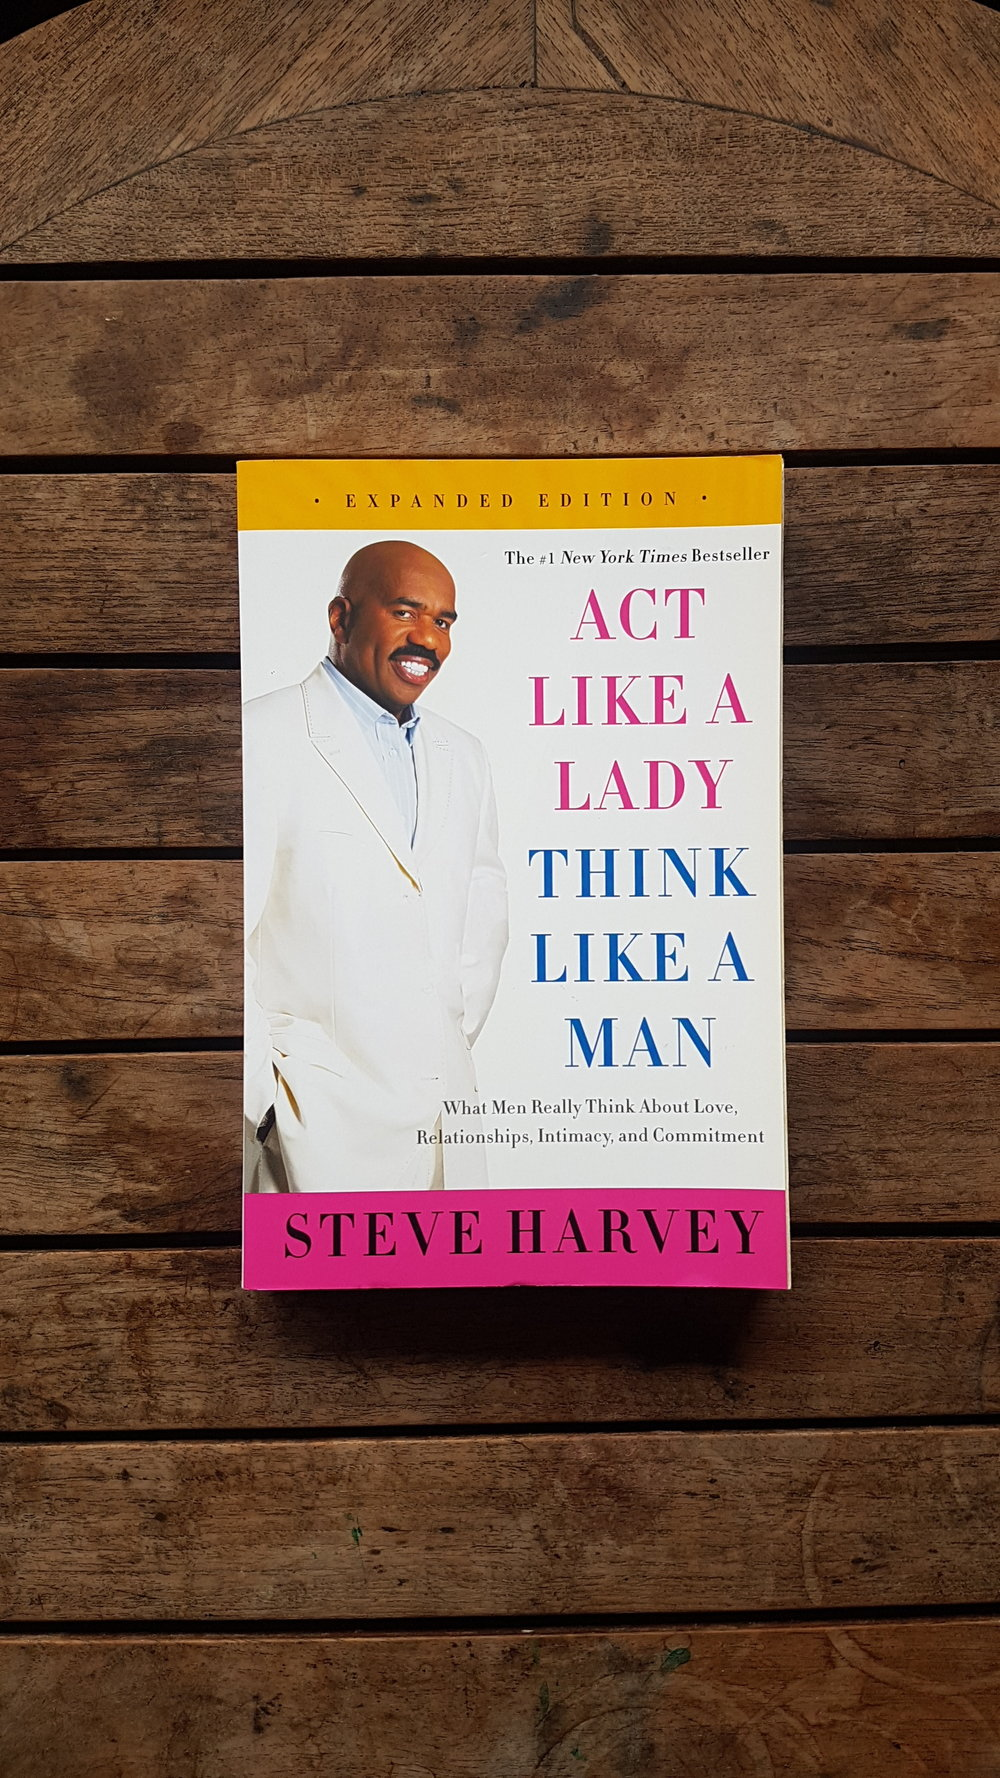 Act Like a Lady, Think Like a Man, Expanded Edition: What Men Really Think About Love, Relationships, Intimacy, and Commitment   by Steve Harvey